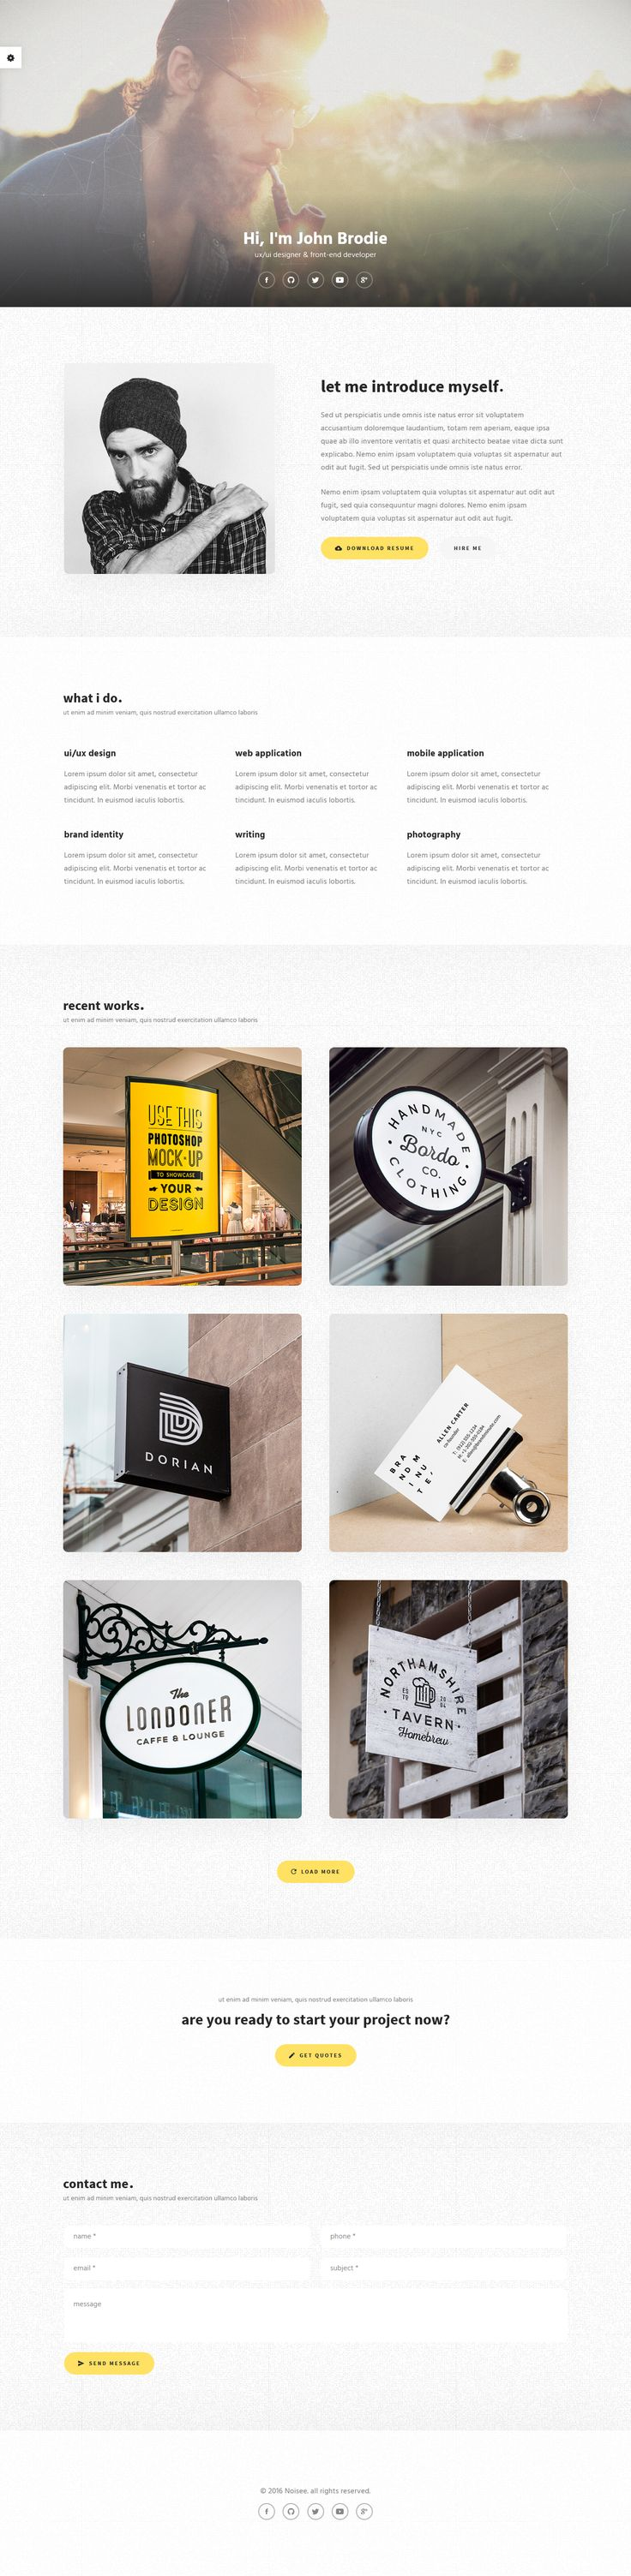 Fully responsive and easy for you to edit. Noisee with modern & clean design. Template focused on web-designers, digital professionals, programmers or photographers. It is perfect to promote your work!